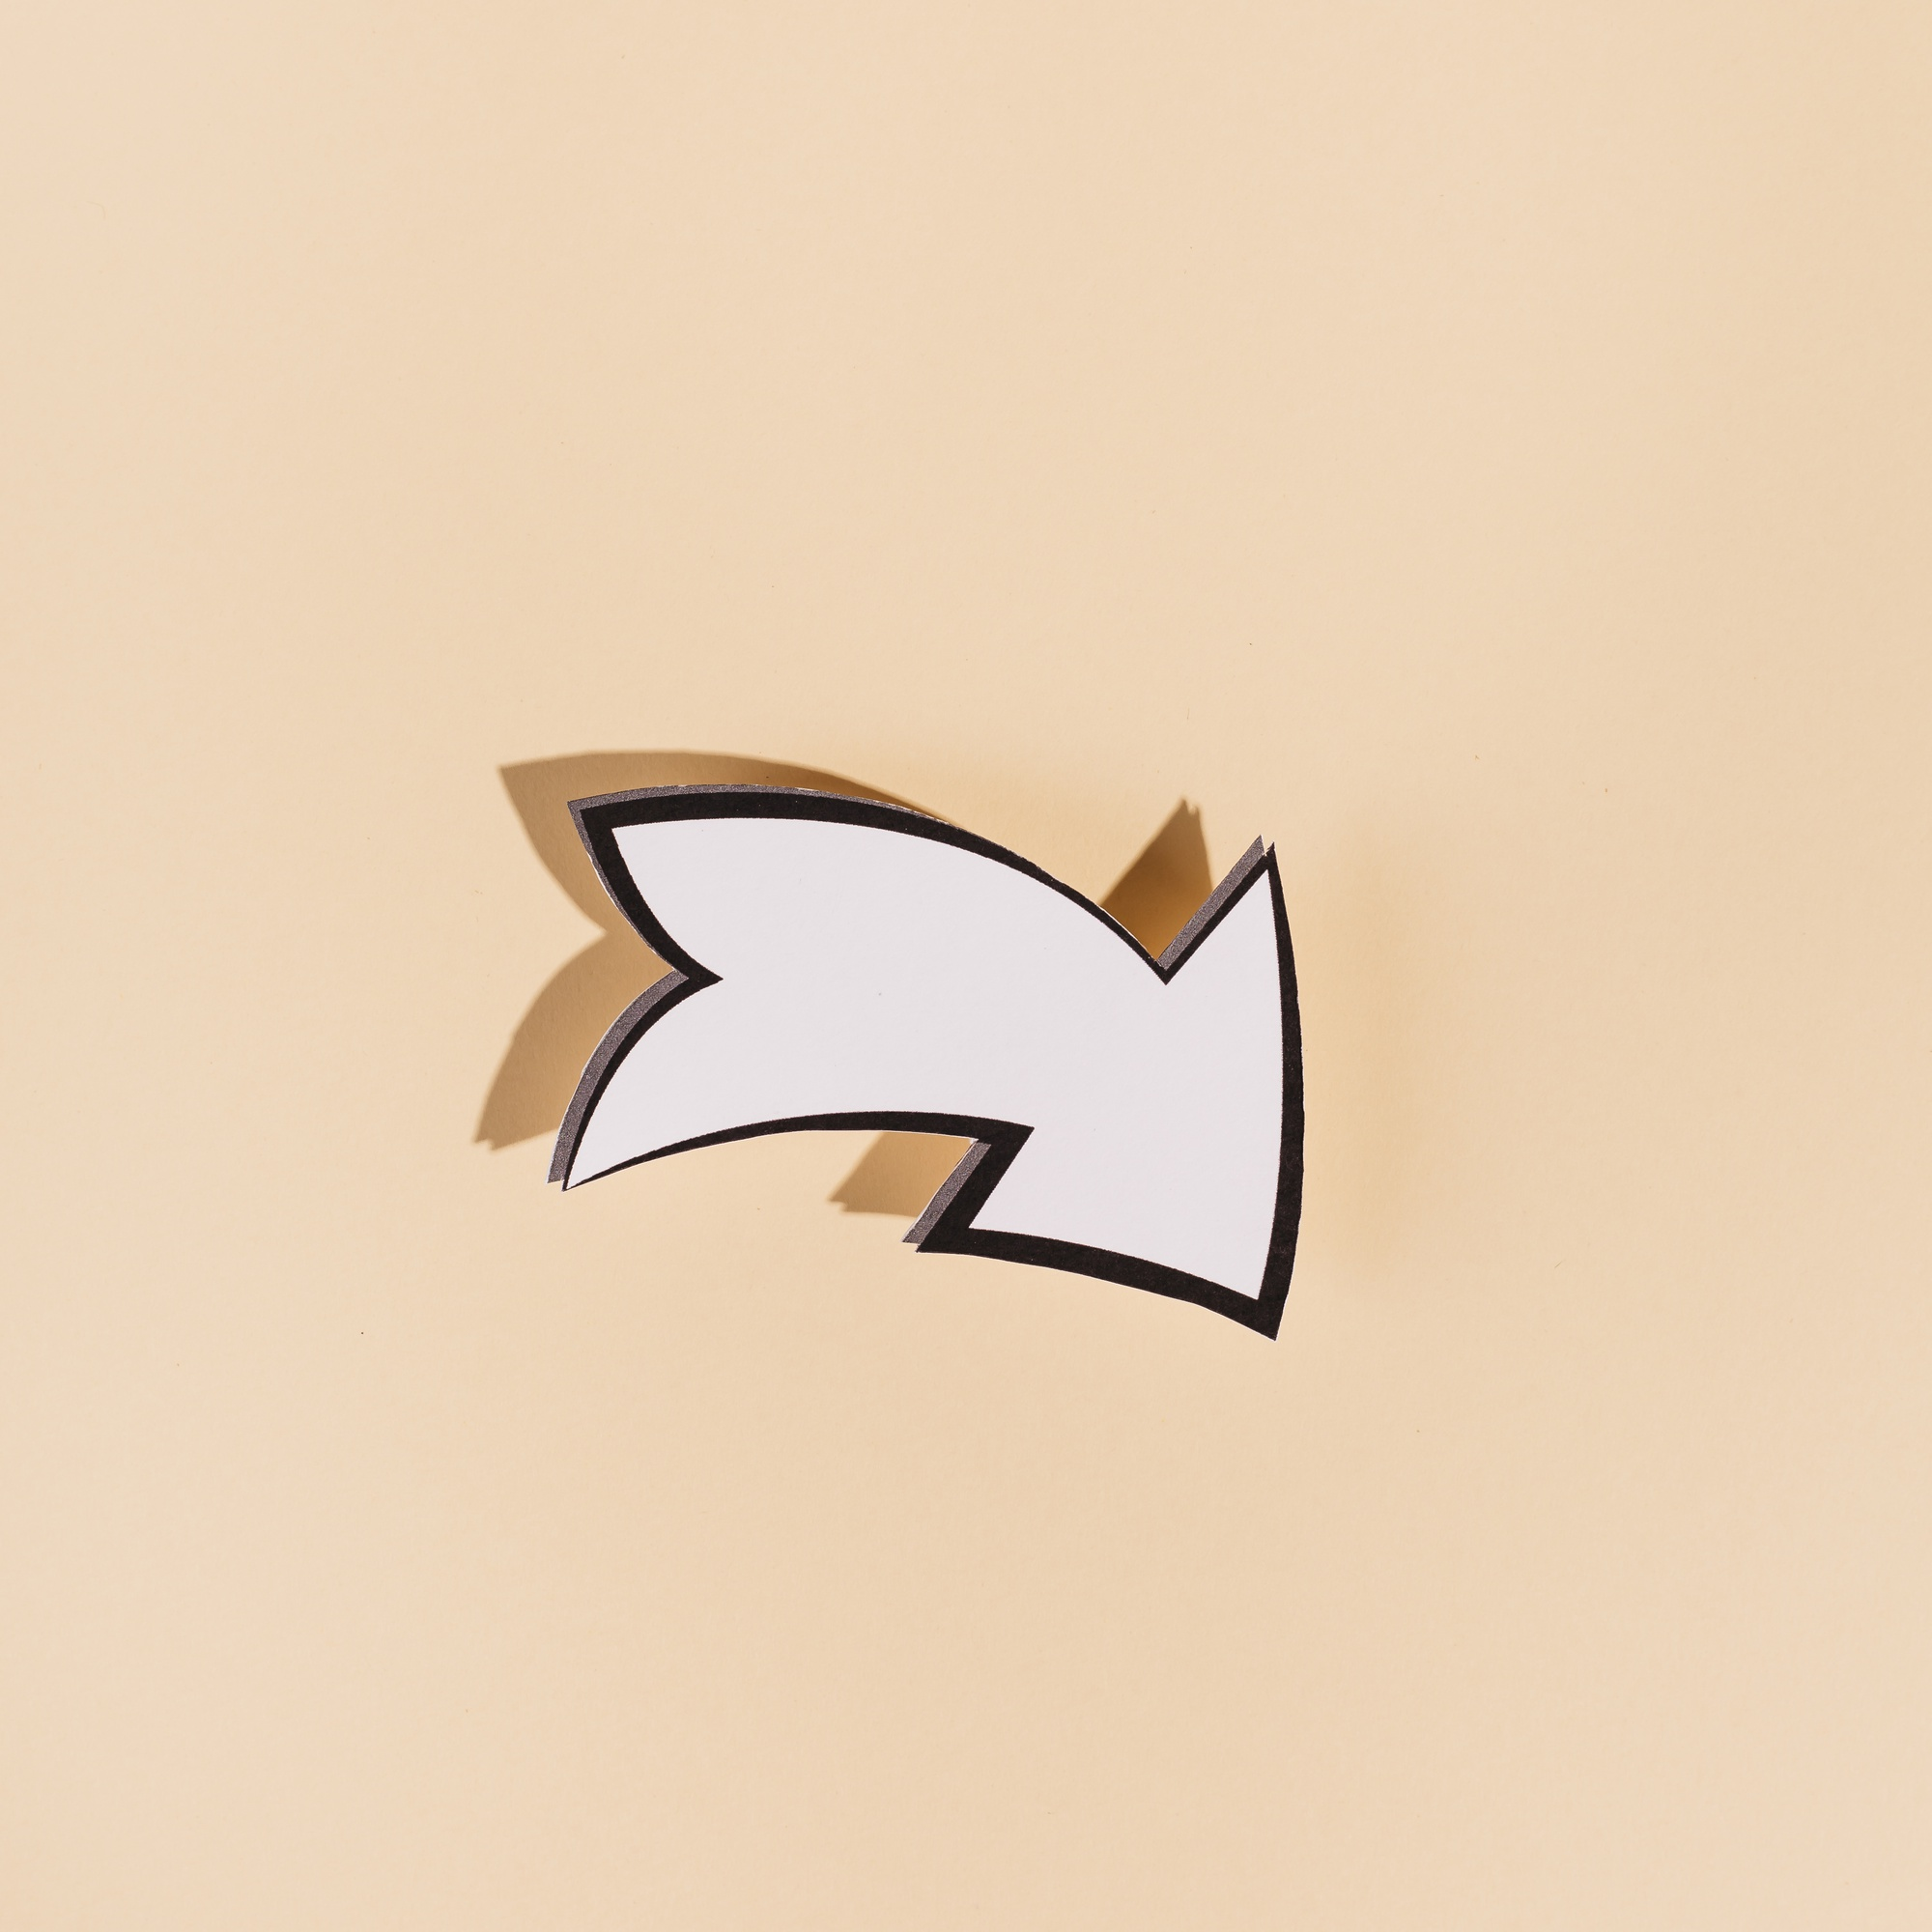 Down white directional arrow on beige background